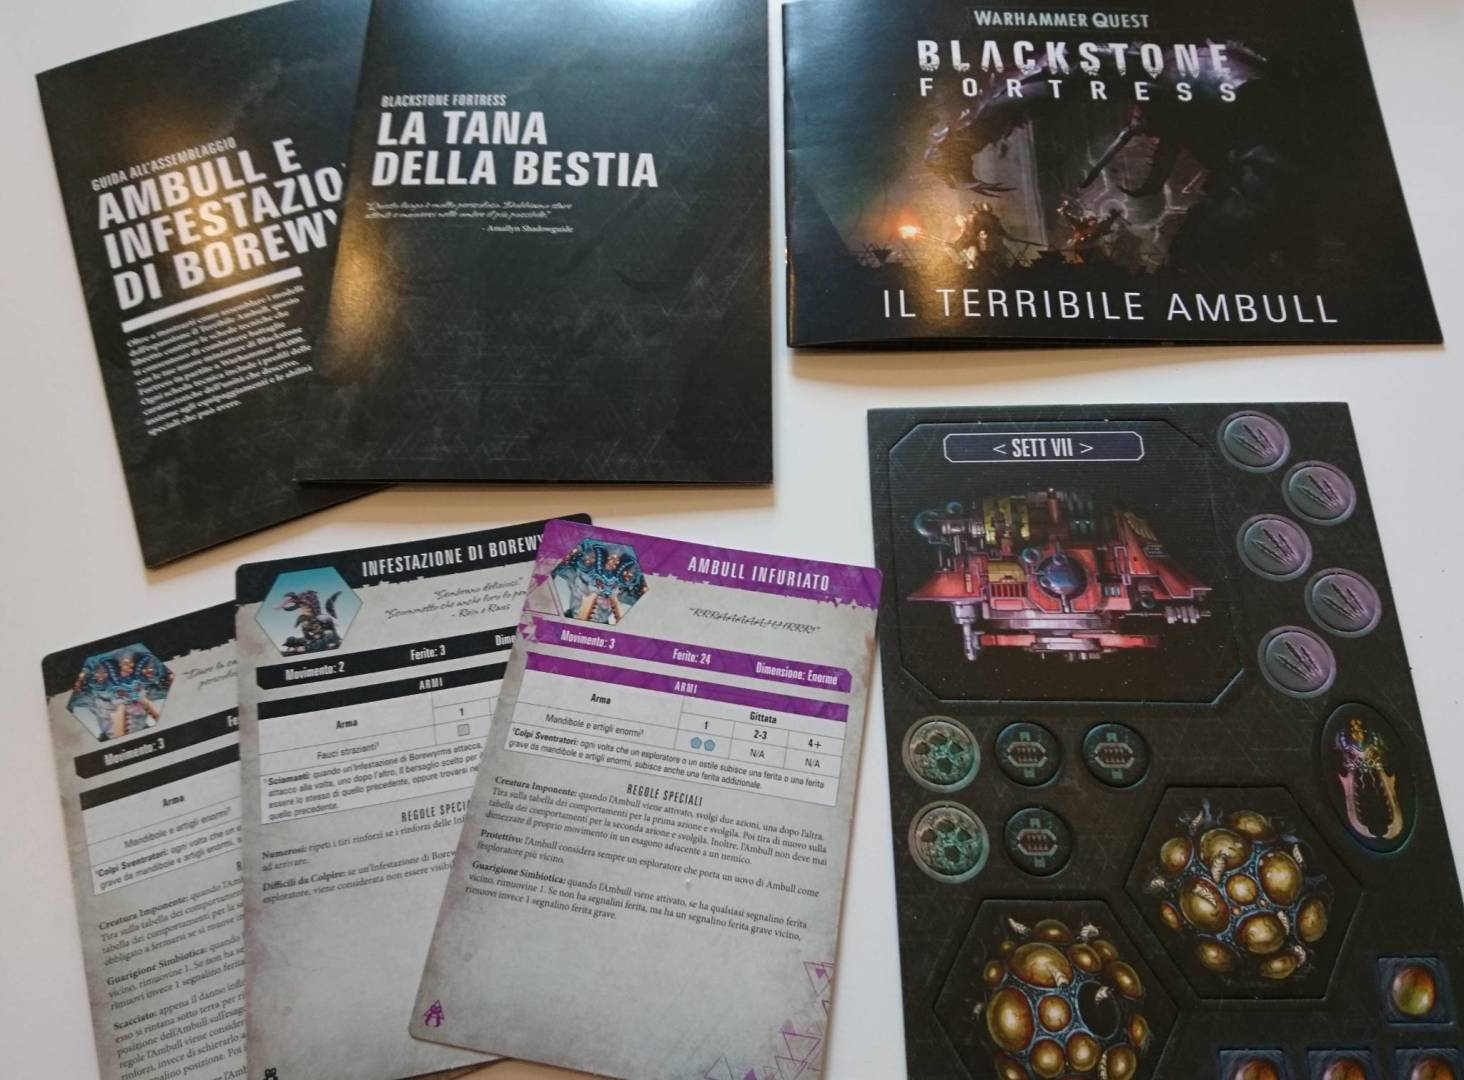 Warhammer Quest - Blackstone Fortress: Lo Spaventoso Ambull